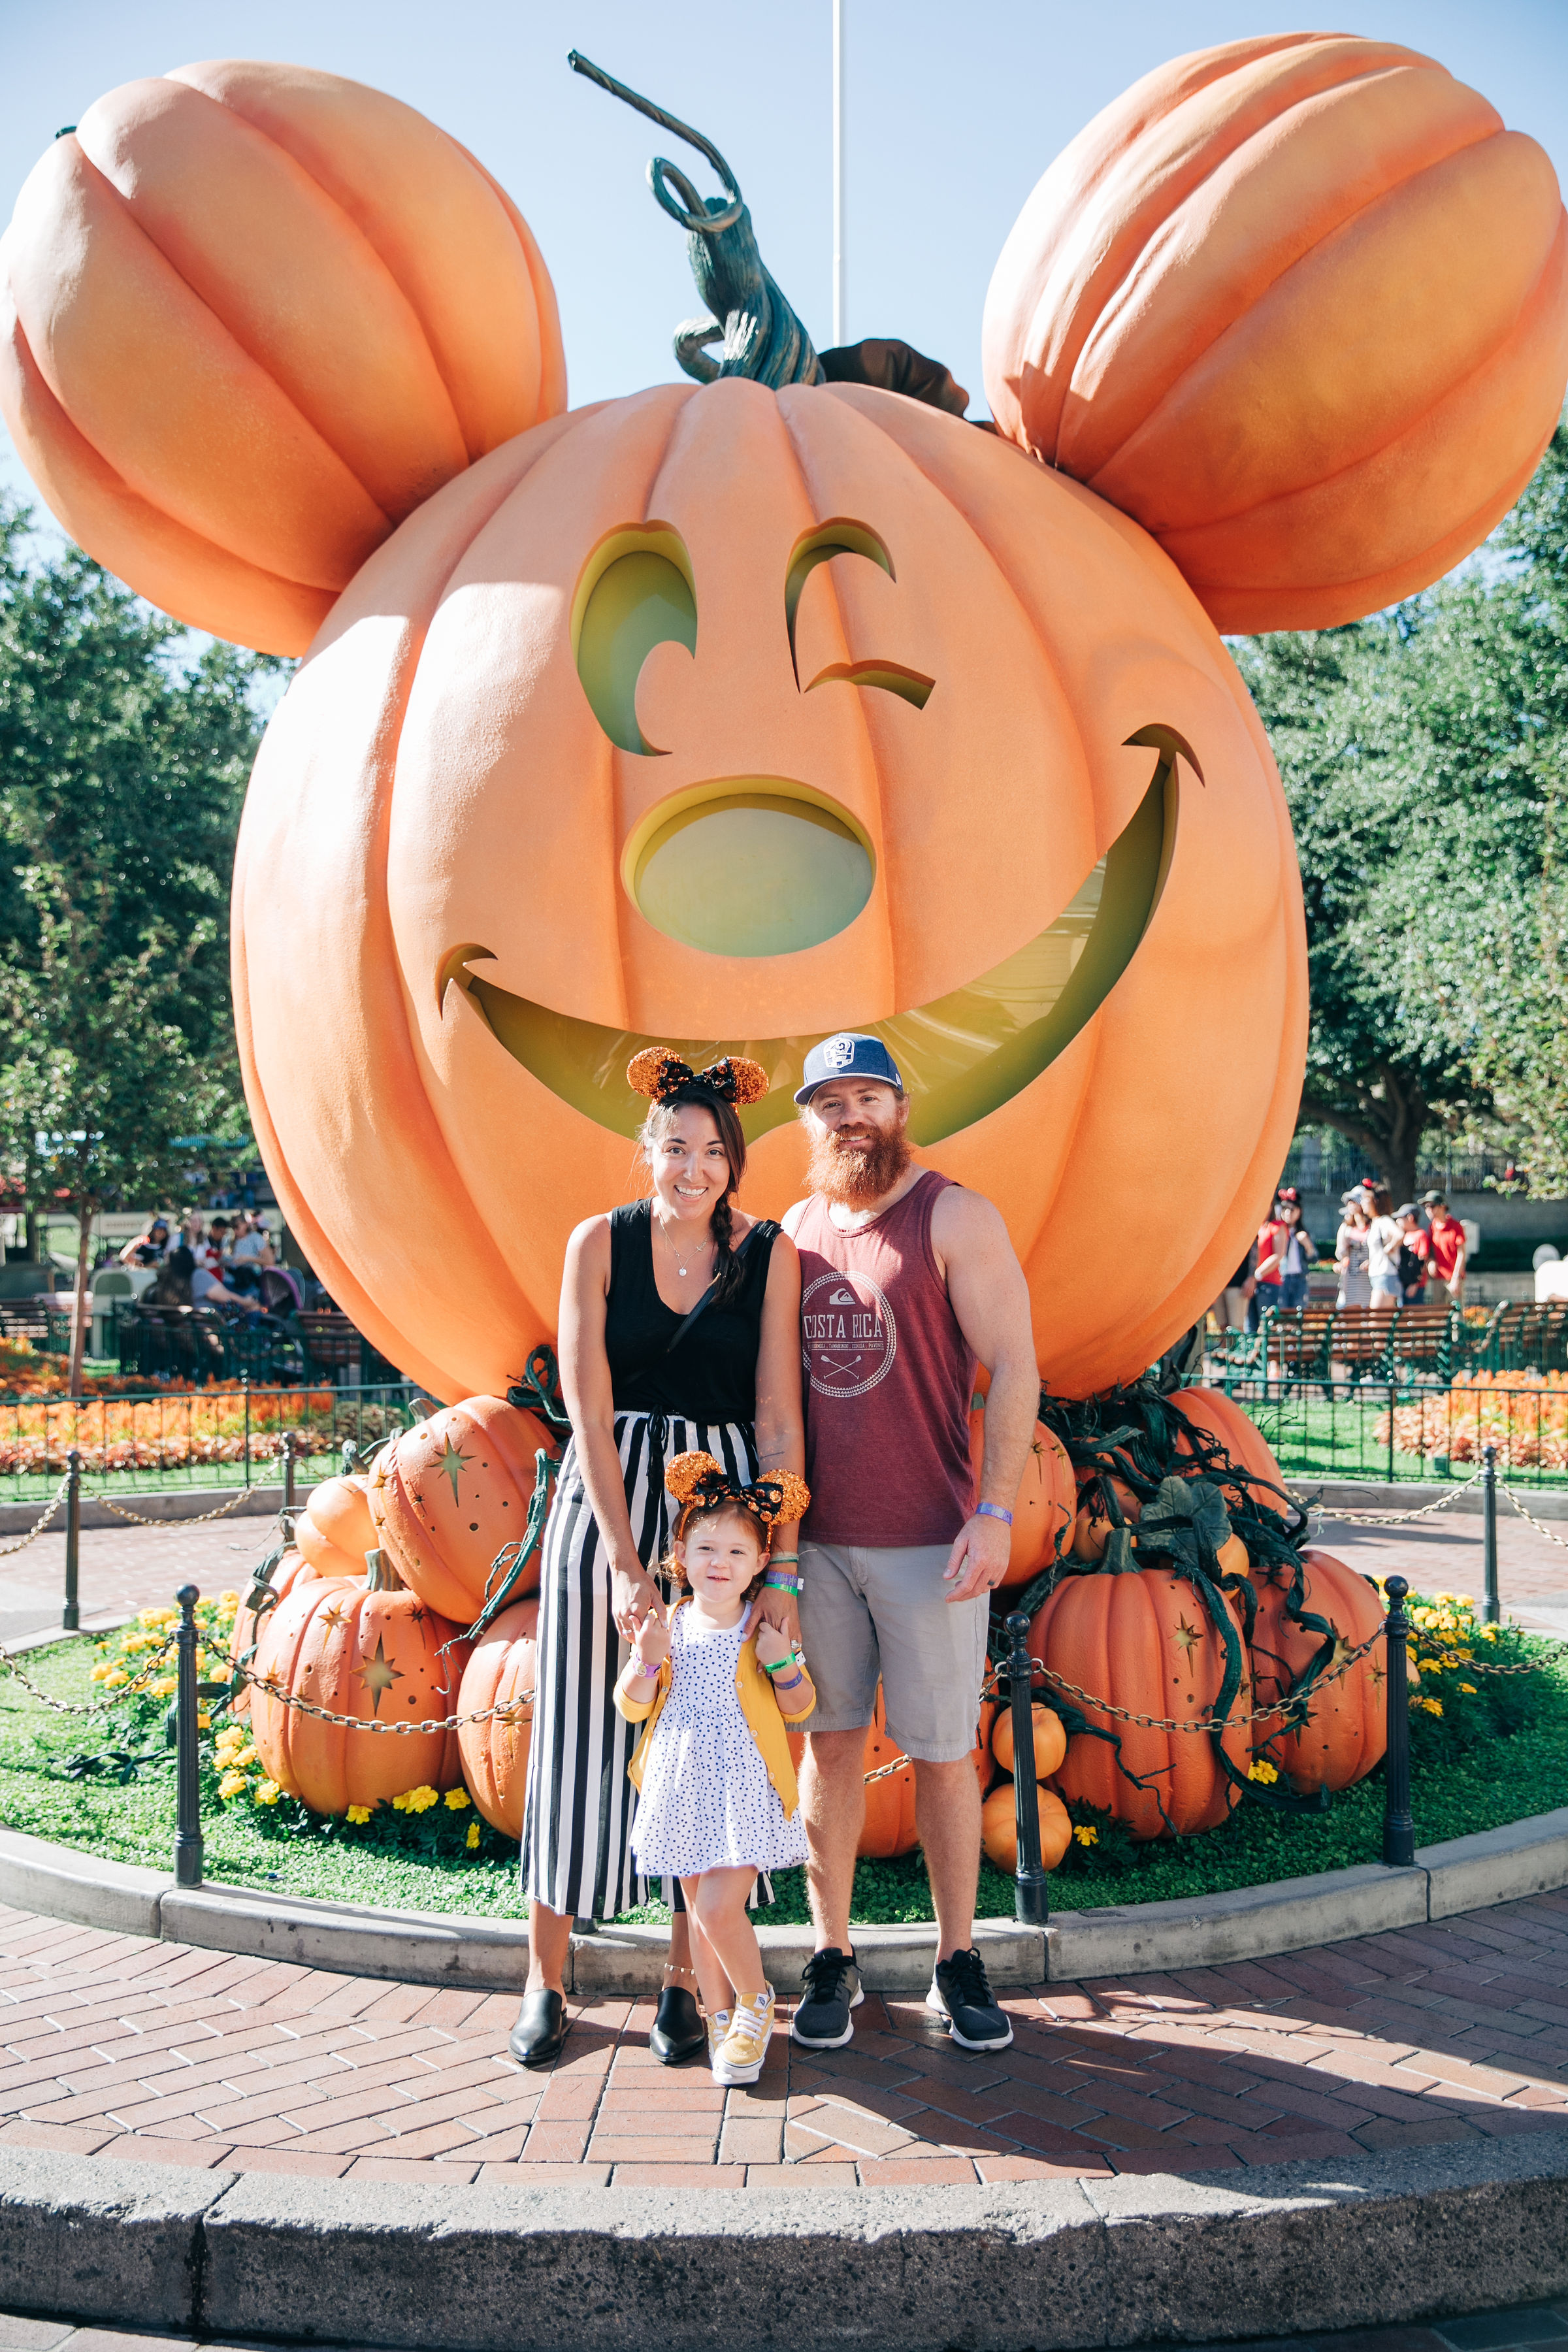 The most popular spot for Halloween Time family photos is in front of the giant Mickey Mouse pumpkin which is inside Disneyland! It is so cute and right at the entrance to Main Street, you won't miss it. You may have to wait in line. I'd try and get to the park when it opens and snag your photos first thing.